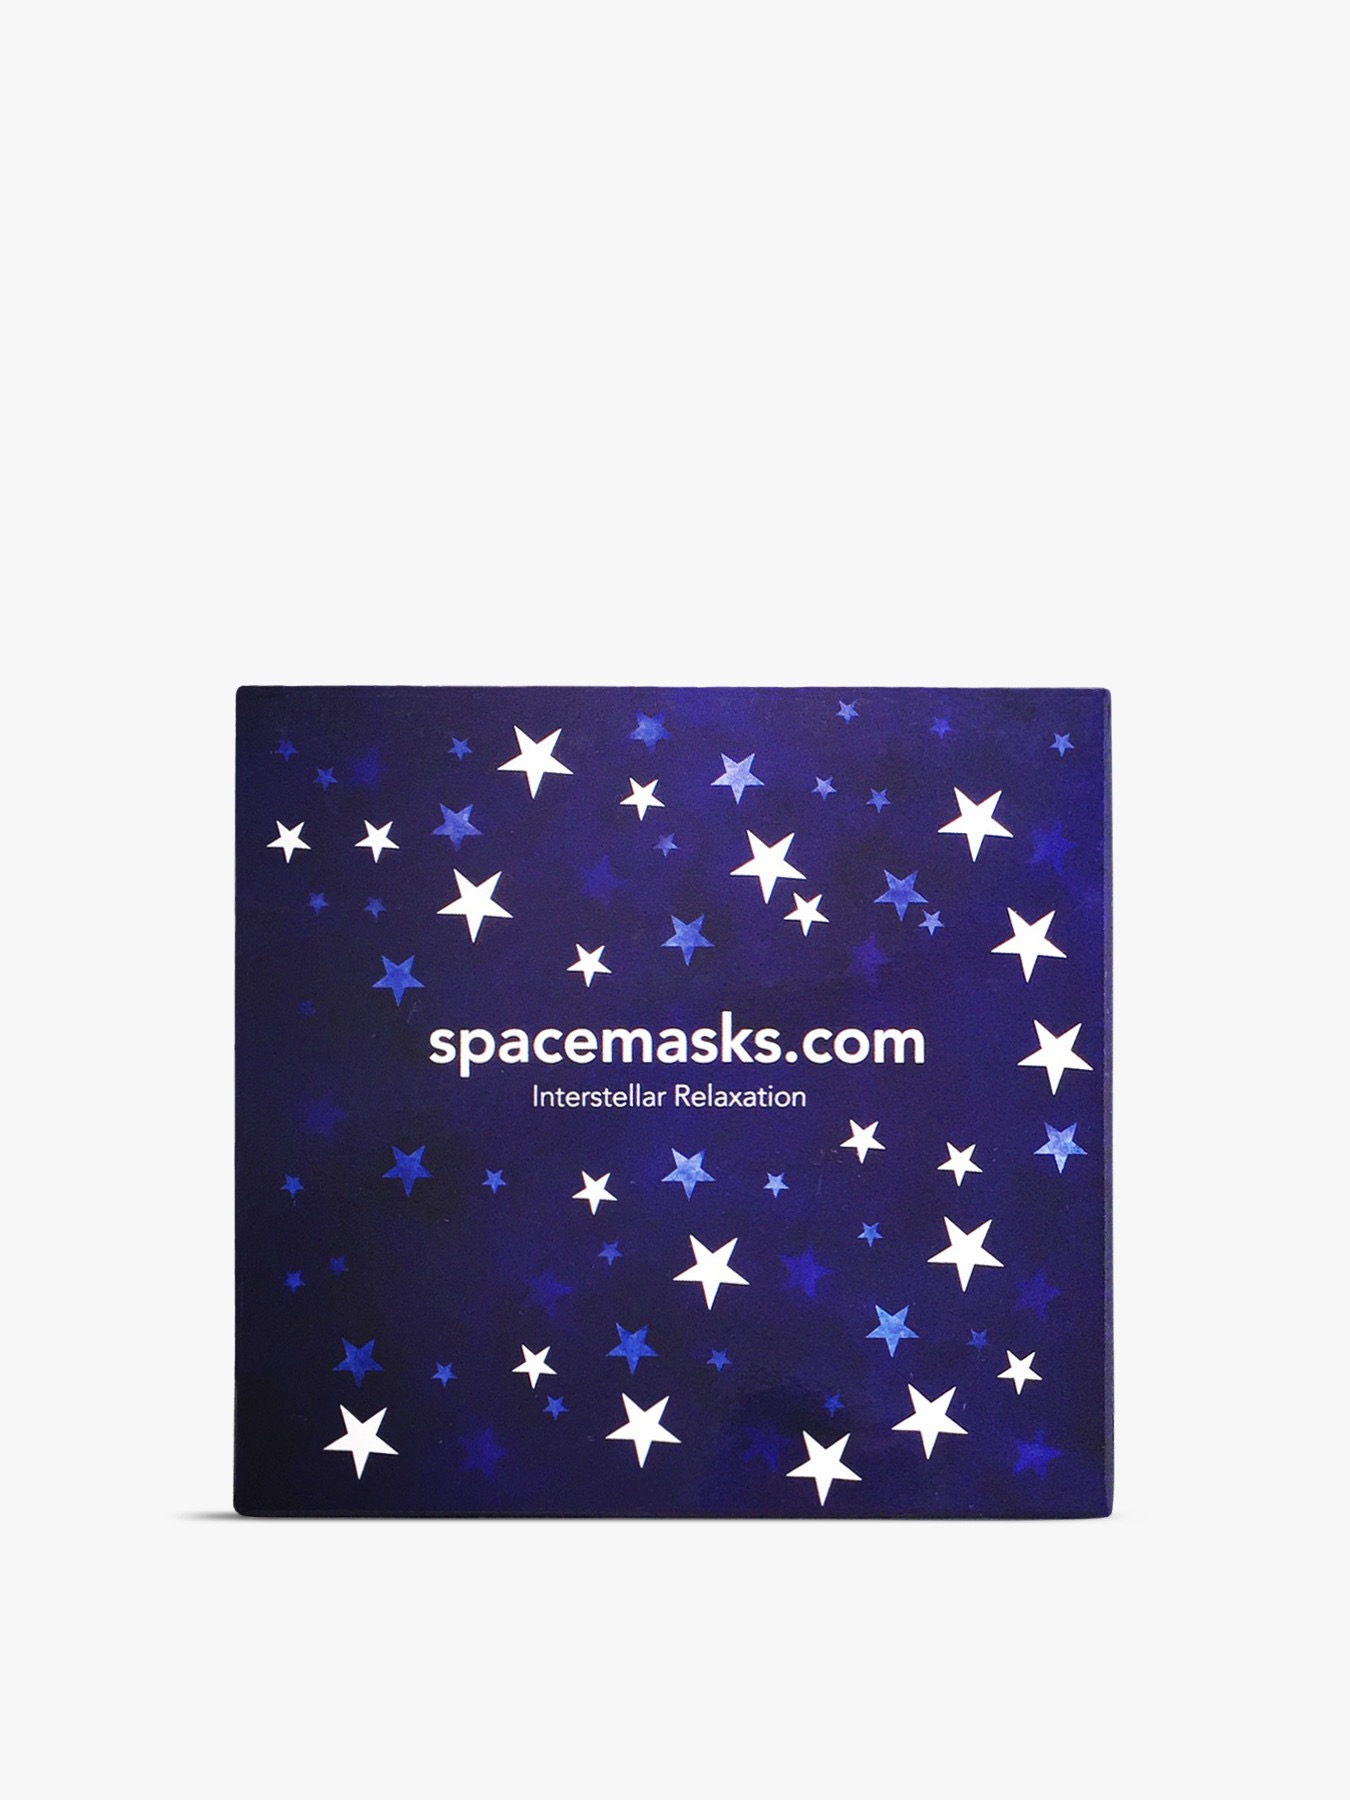 Box of 5 Space masks - Interstellar Relaxation